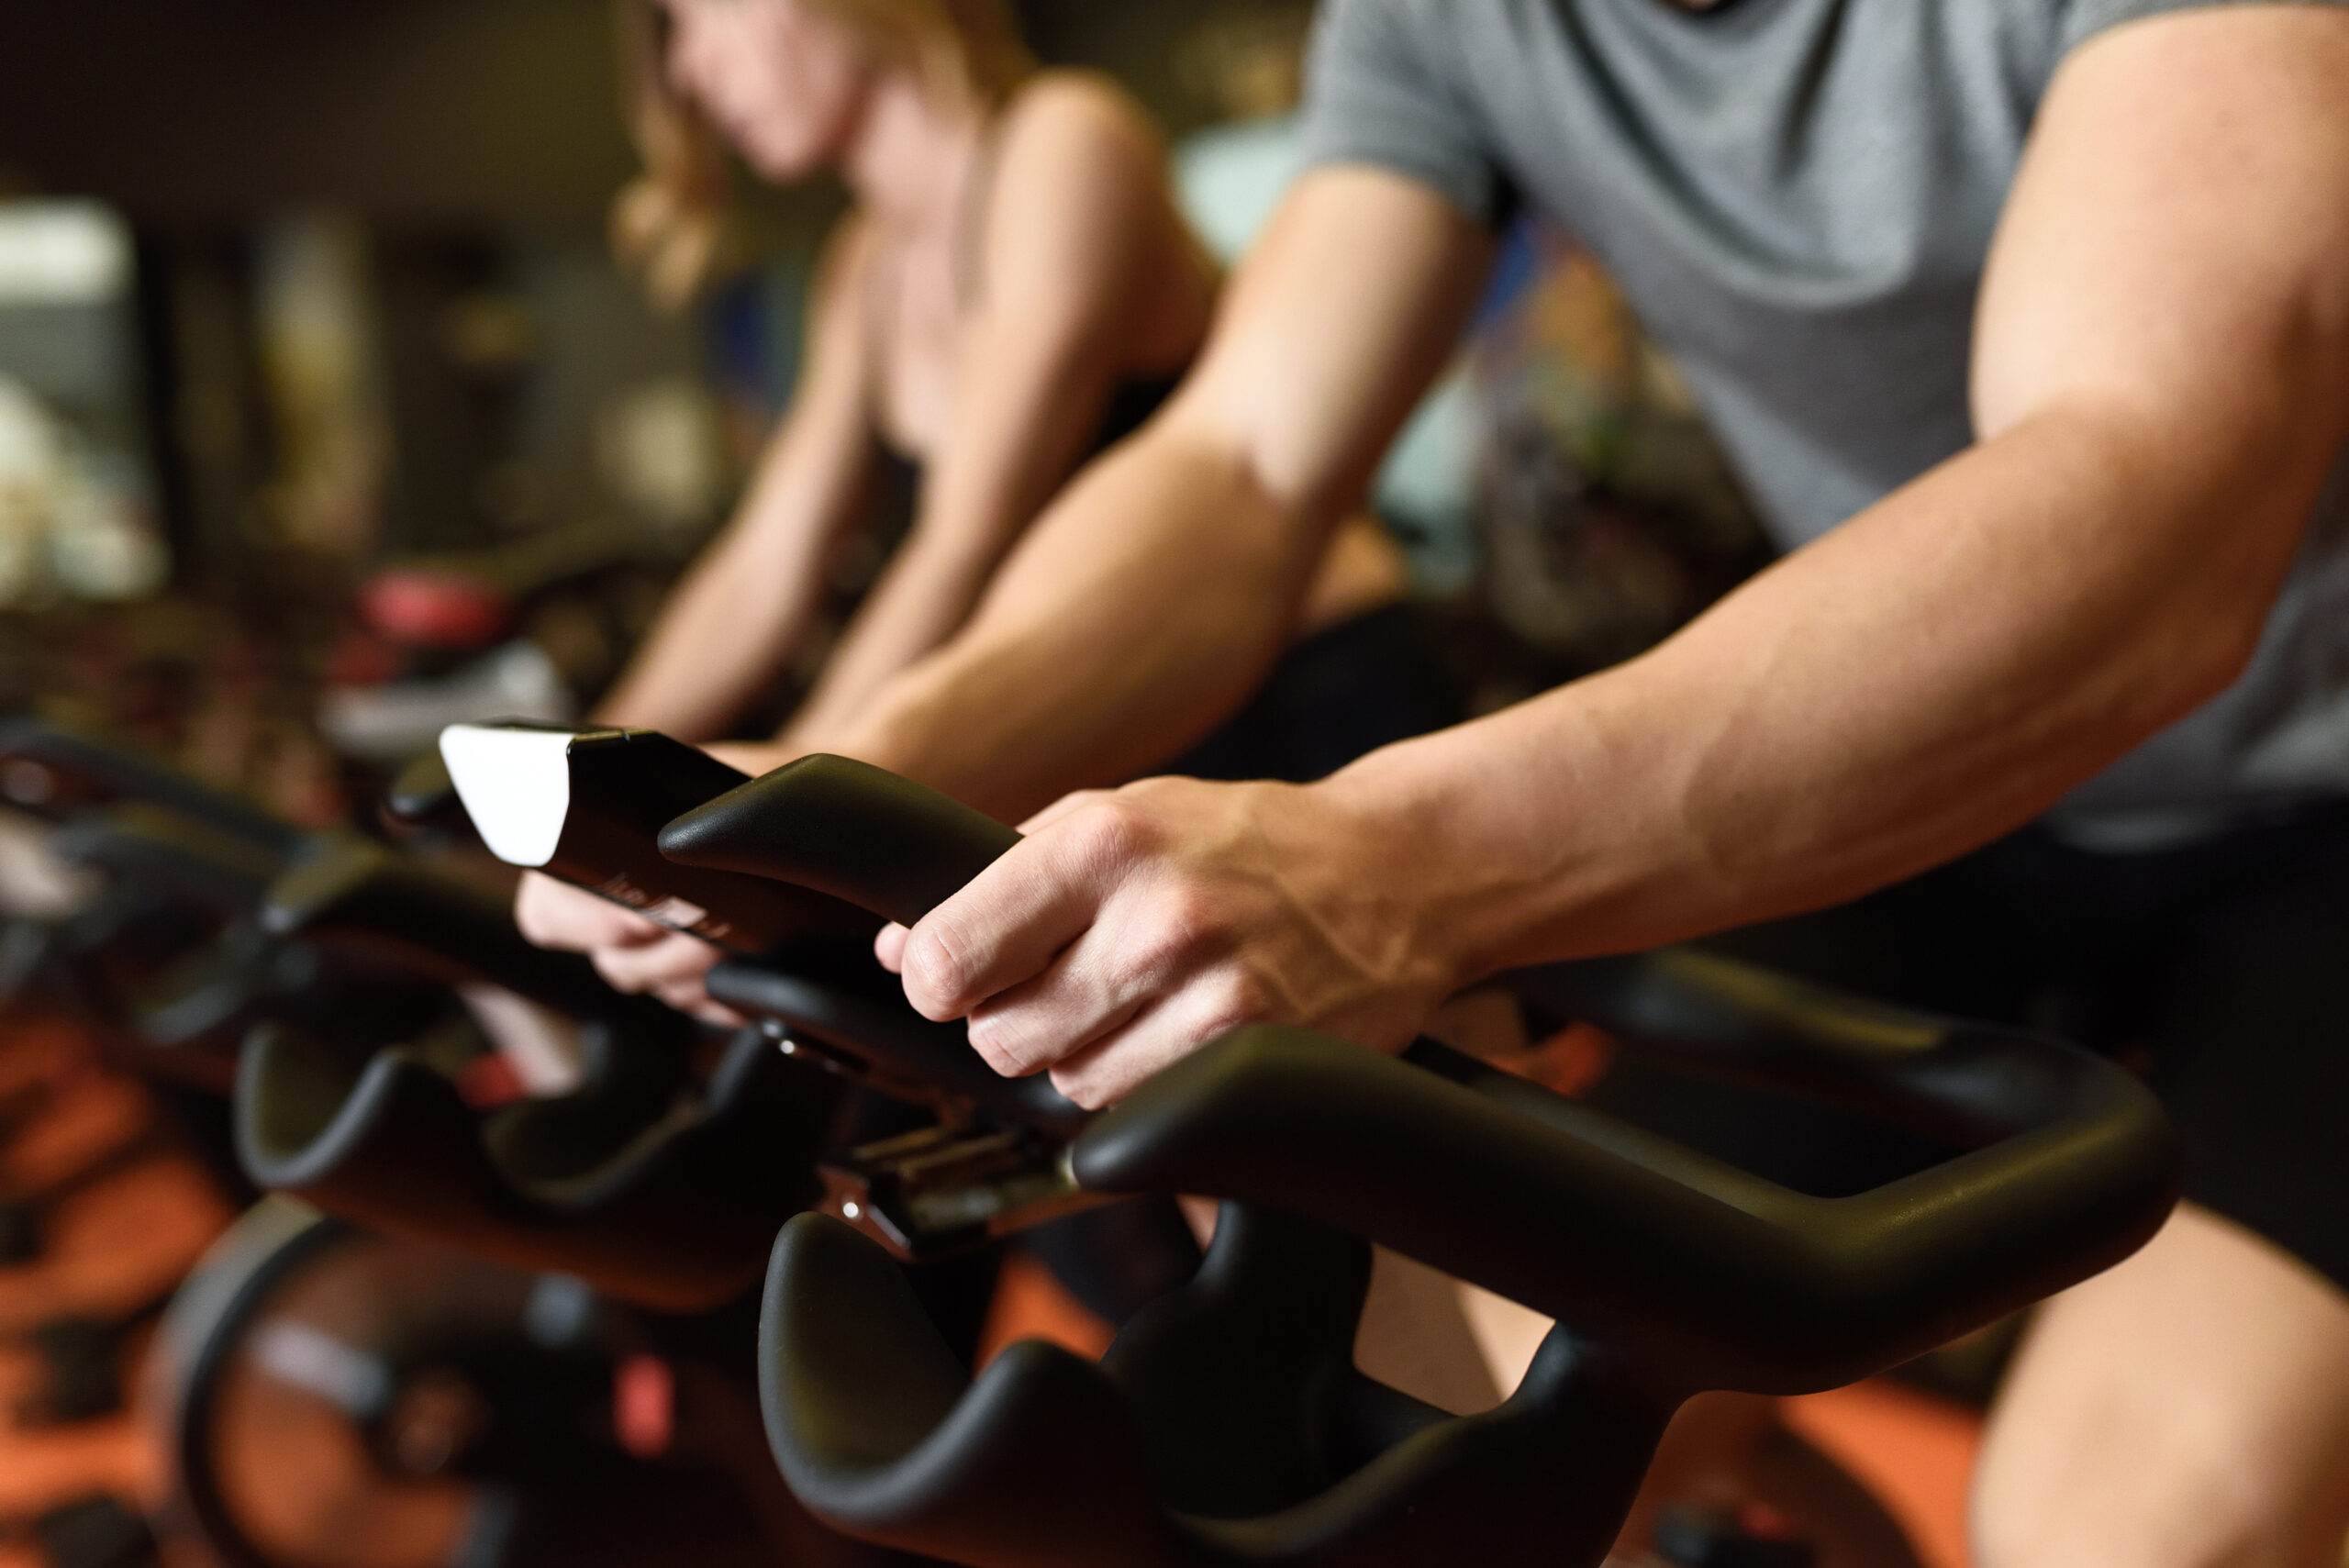 xterra fitness mbx2500 indoor cycle review